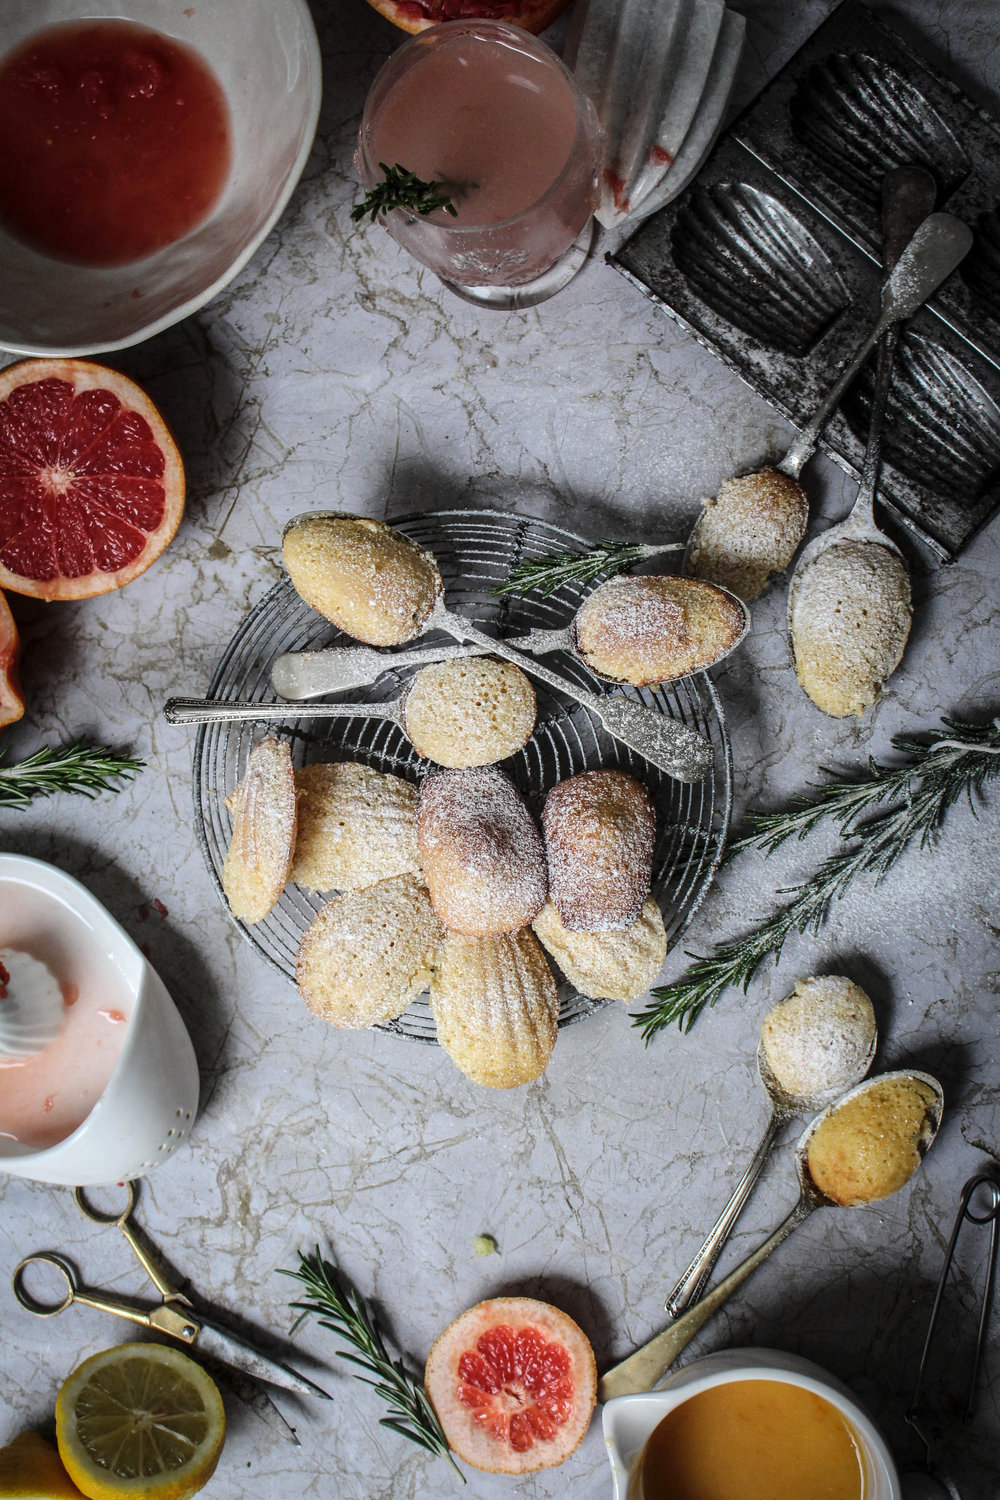 Pink-Grapefruit-and-Rosemary-Madeleines-a-guest-post-from-Twigg-Studios-2.jpg